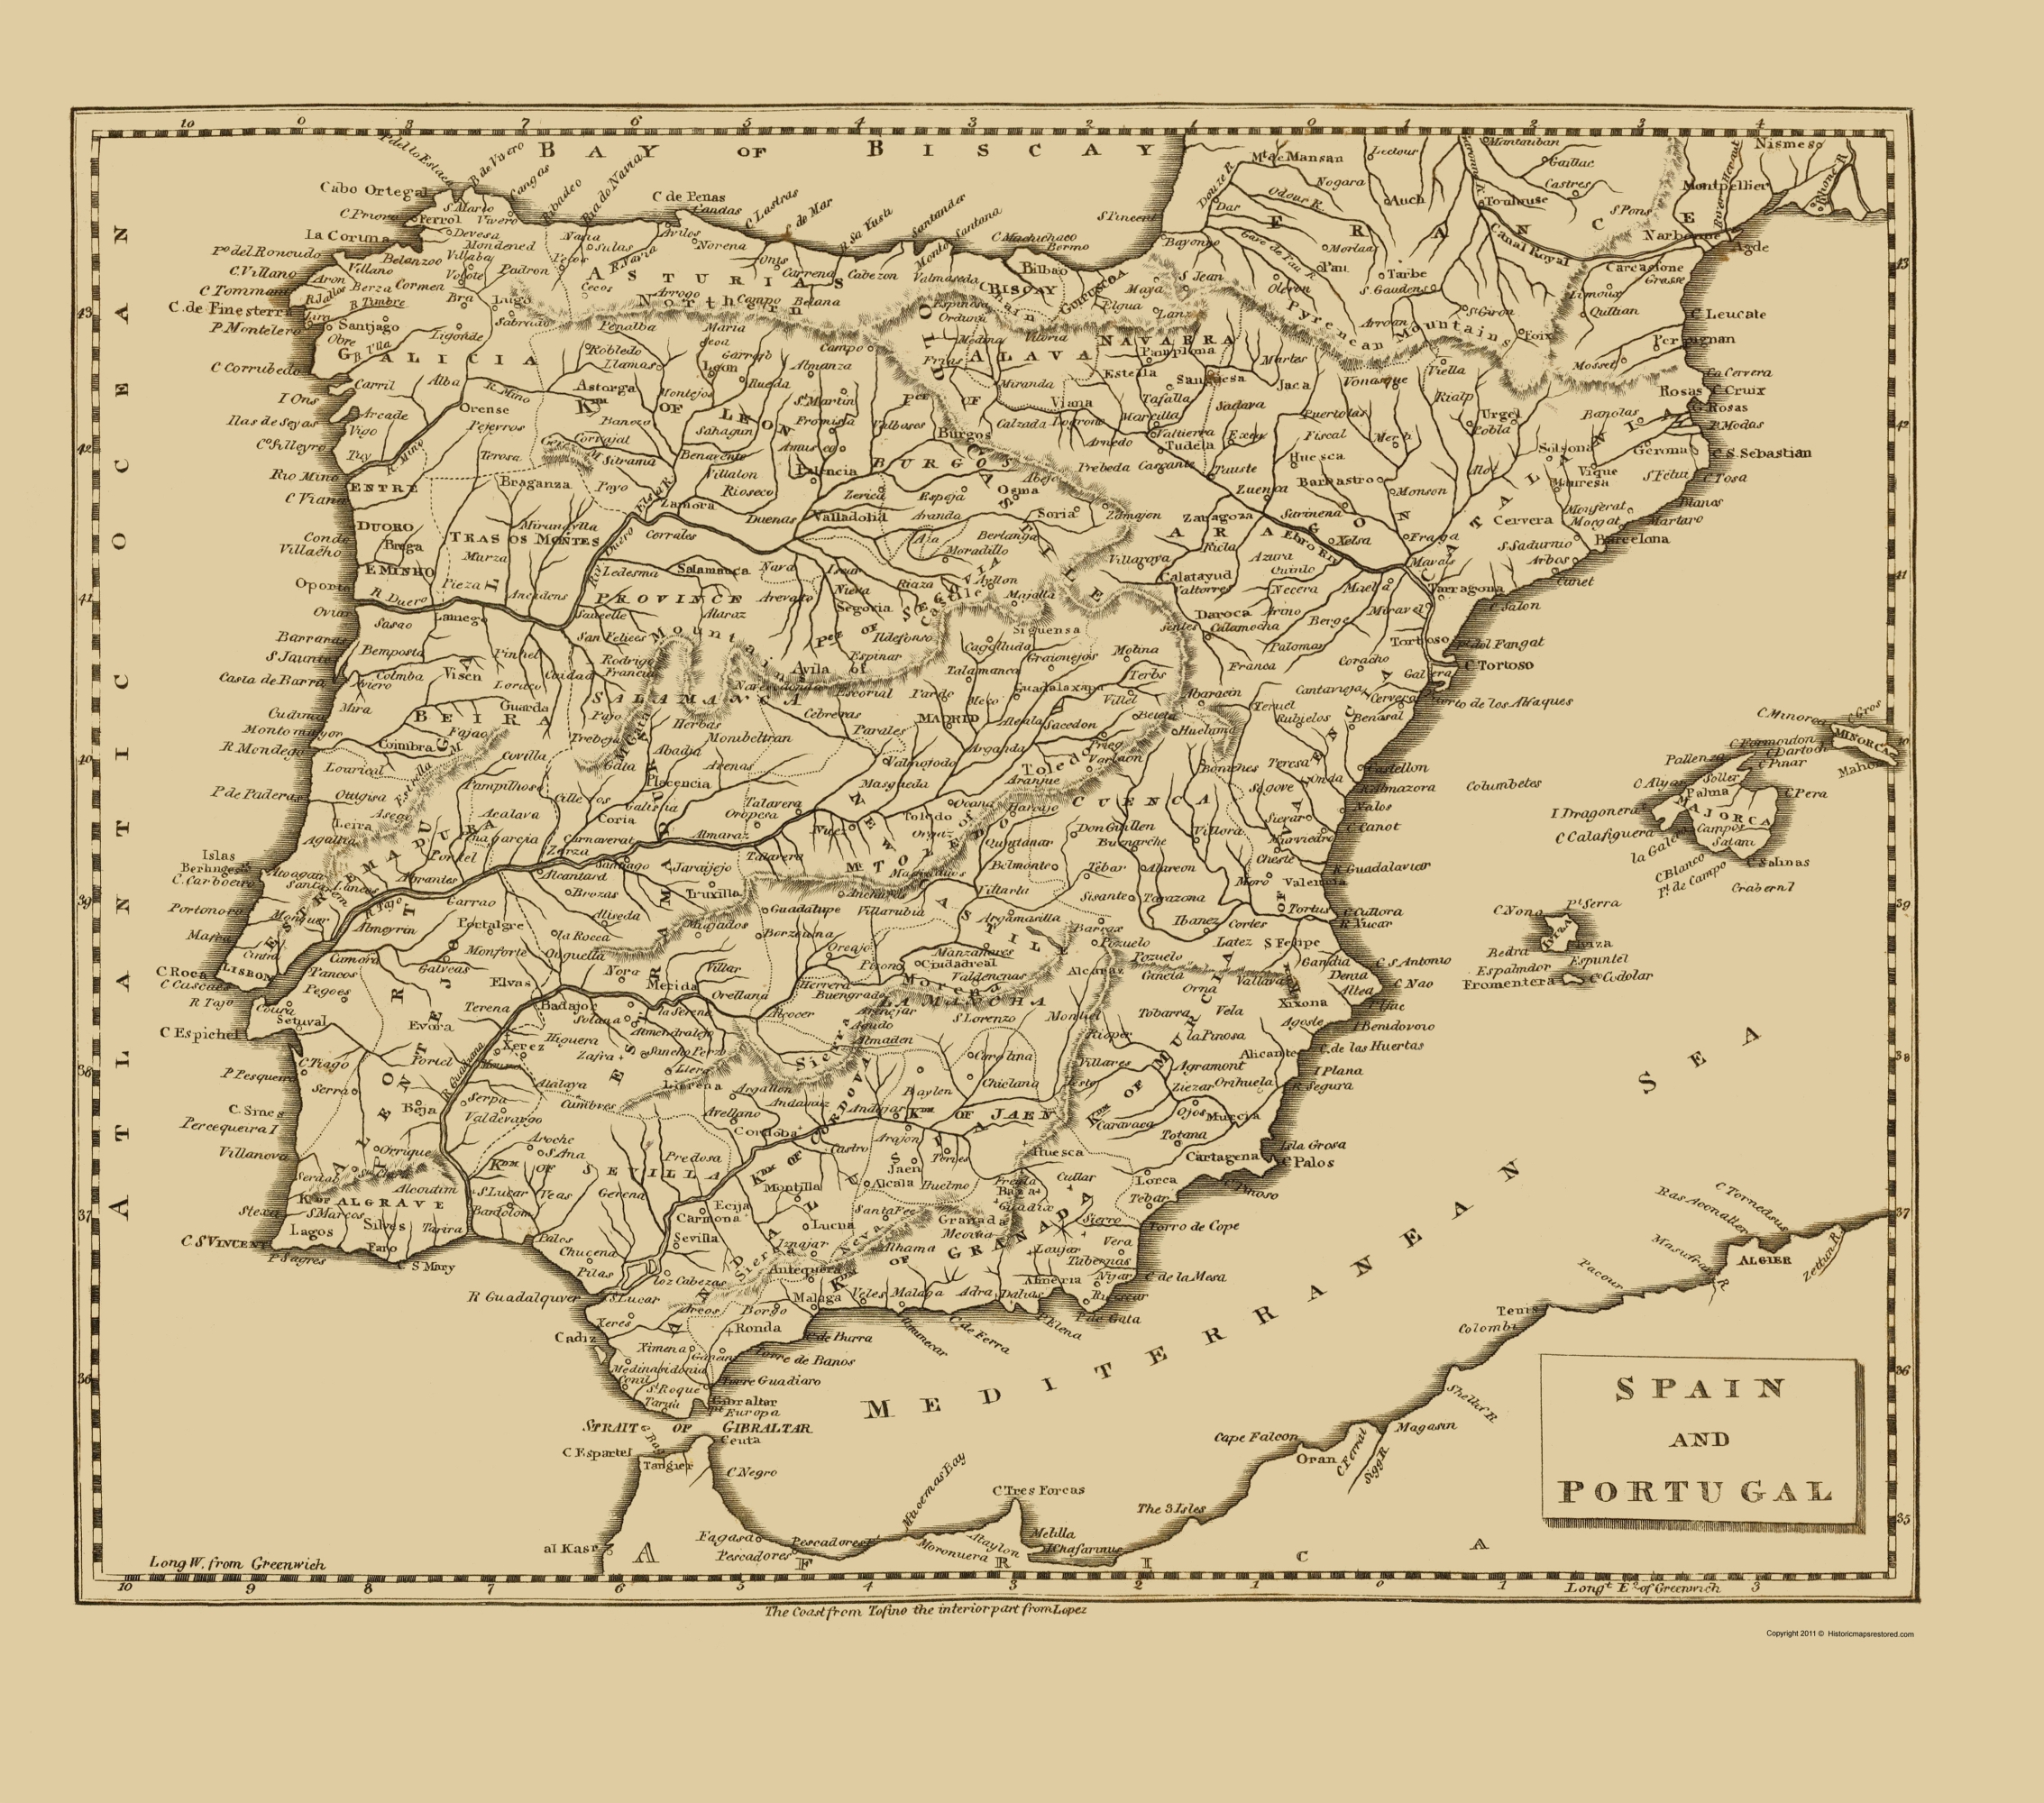 Old Iberian Peninsula Map Spain And Portugal Thomas - Portugal map iberian peninsula